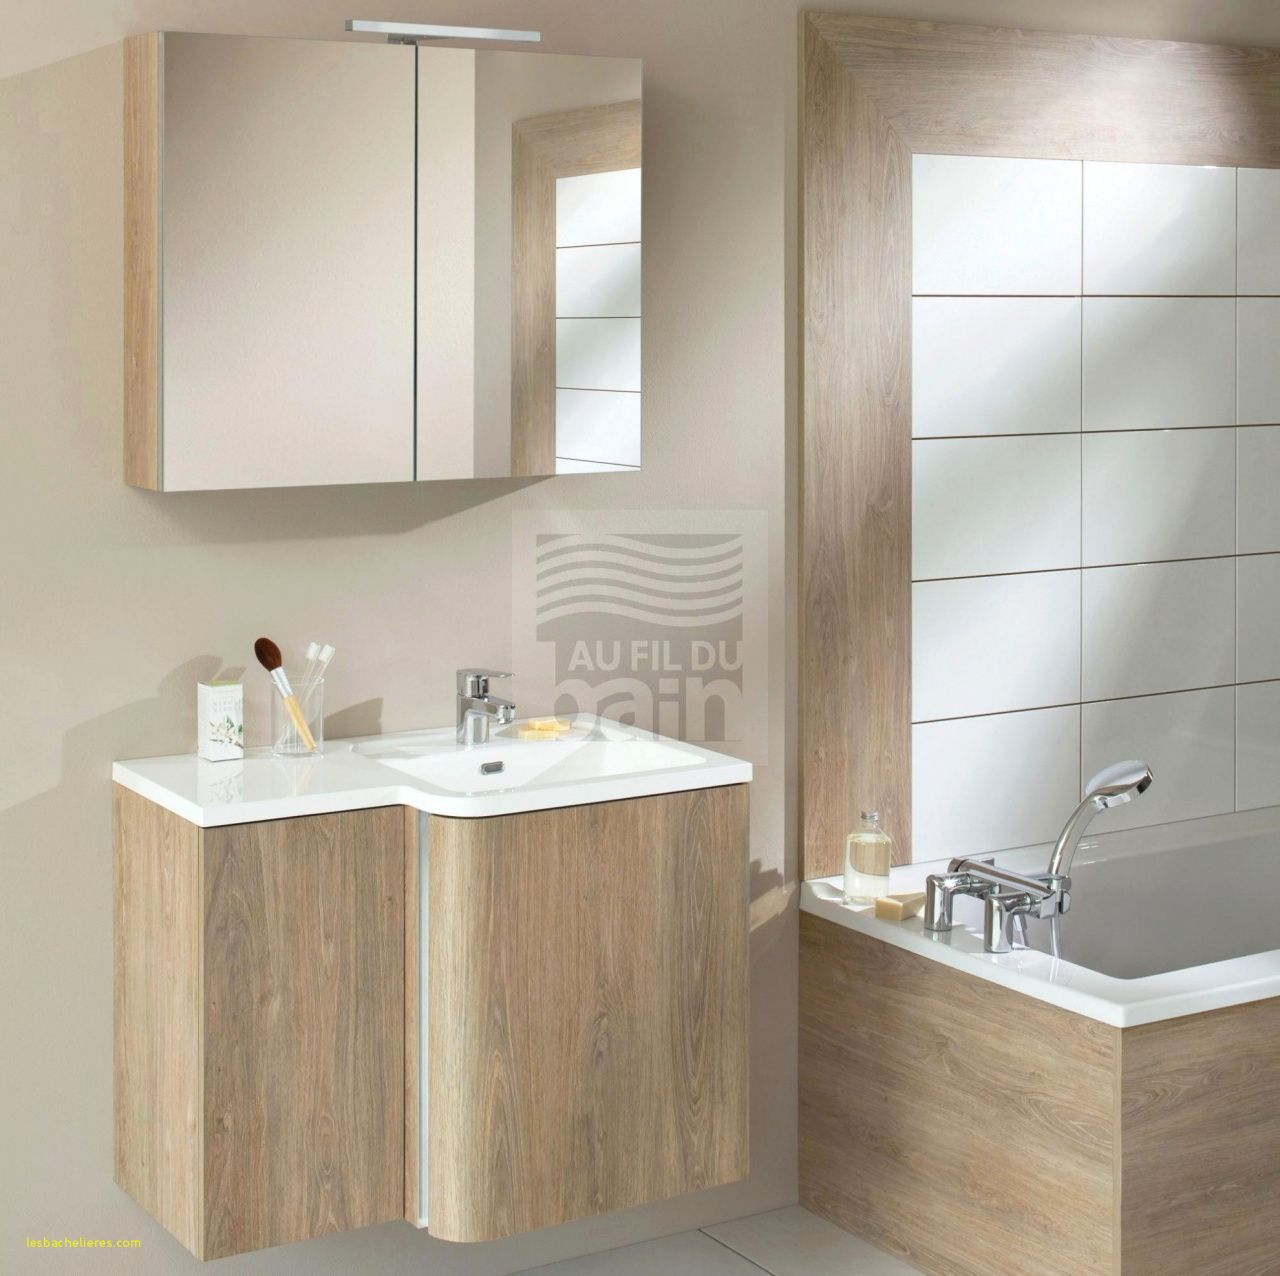 70 Meuble Salle De Bain Brico Depot Bathroom Vanity Entertaining House Cool Furniture